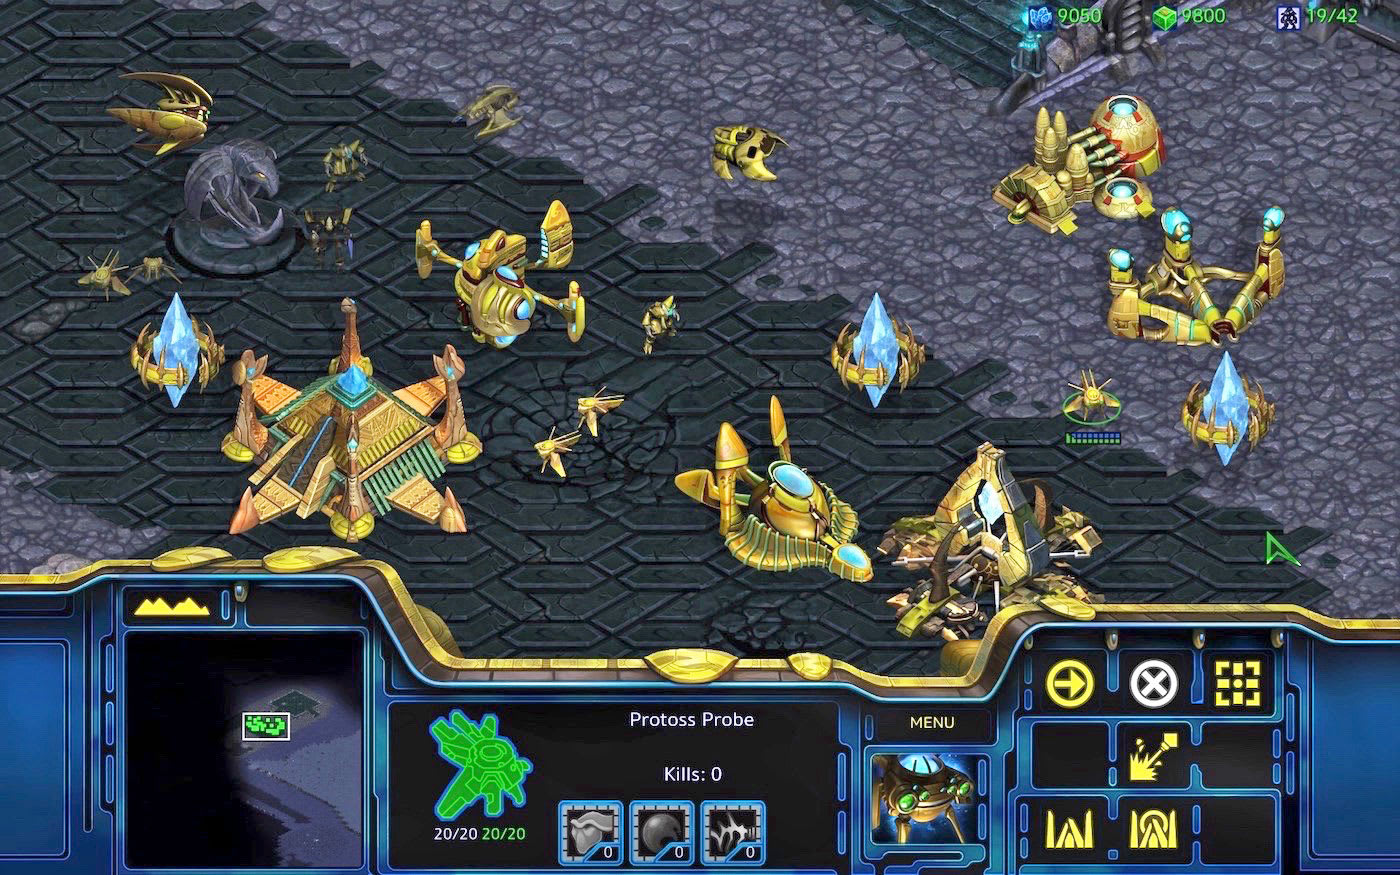 Get your free copy of 'StarCraft' ahead of its Remastered release